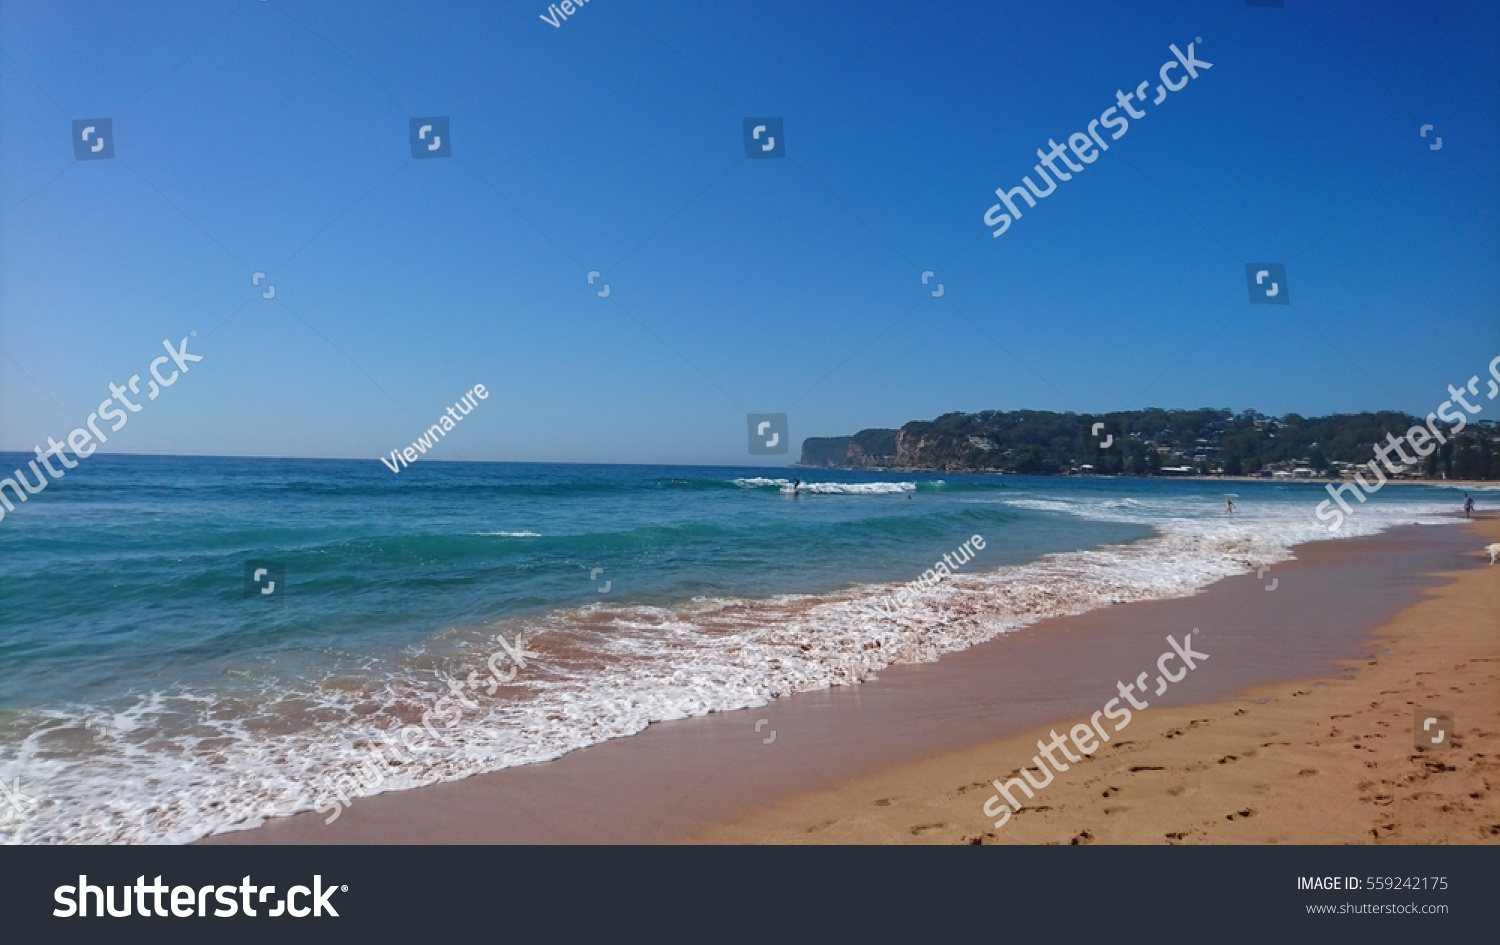 Rain Beach Emerald Coast Blue Sea Australia Ocean Summer: Shoreline Waves Blue Sky Headland Avoca Stock Photo